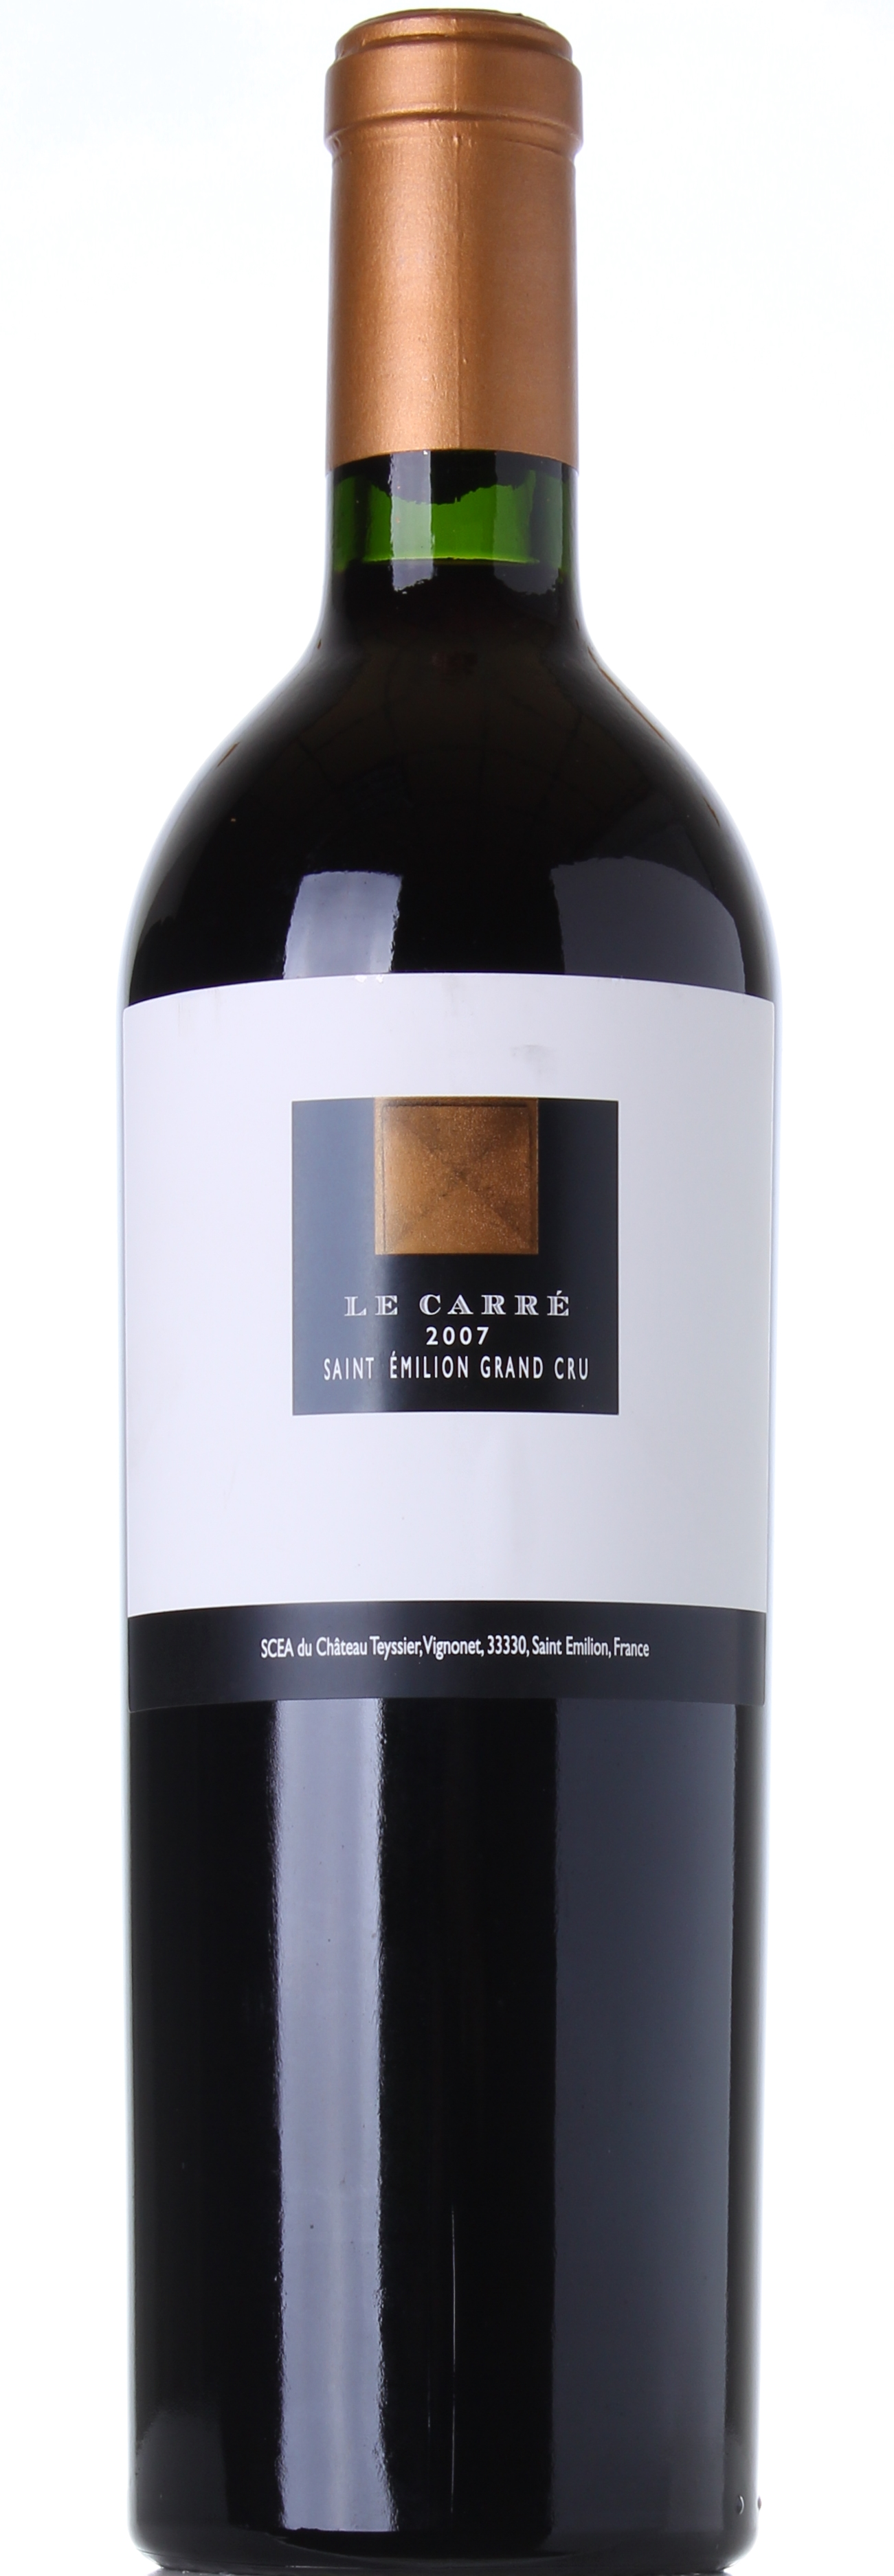 CHATEAU TEYSSIER LE CARRE 2007